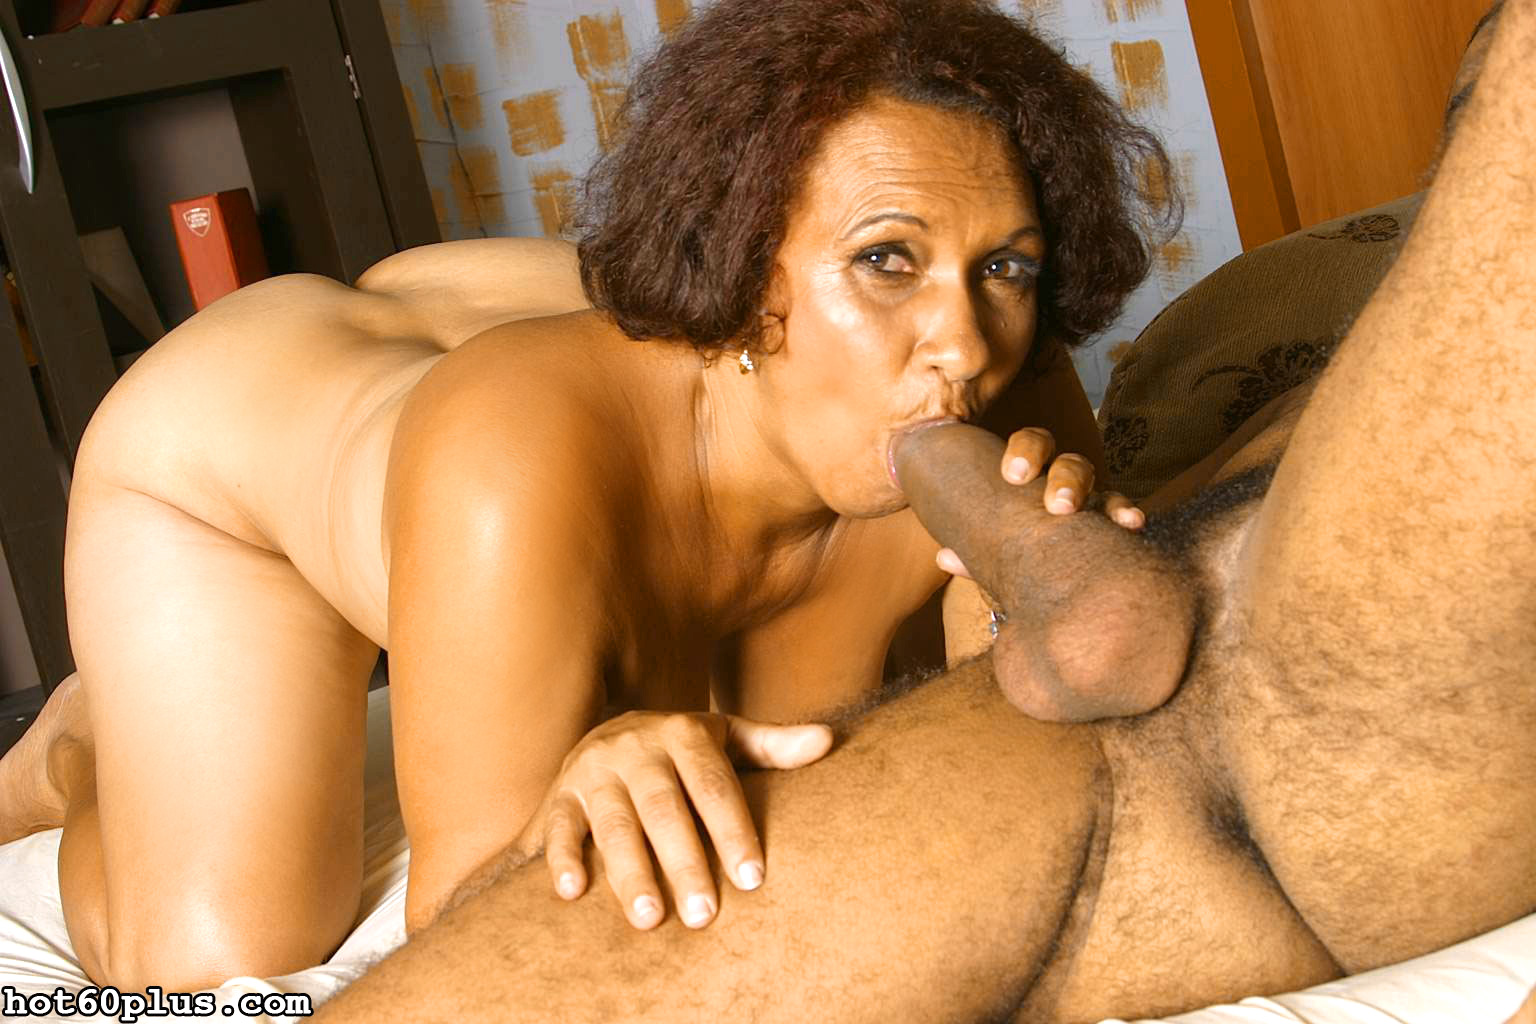 ethnic mature woman gives blowjob and gets her well experienced